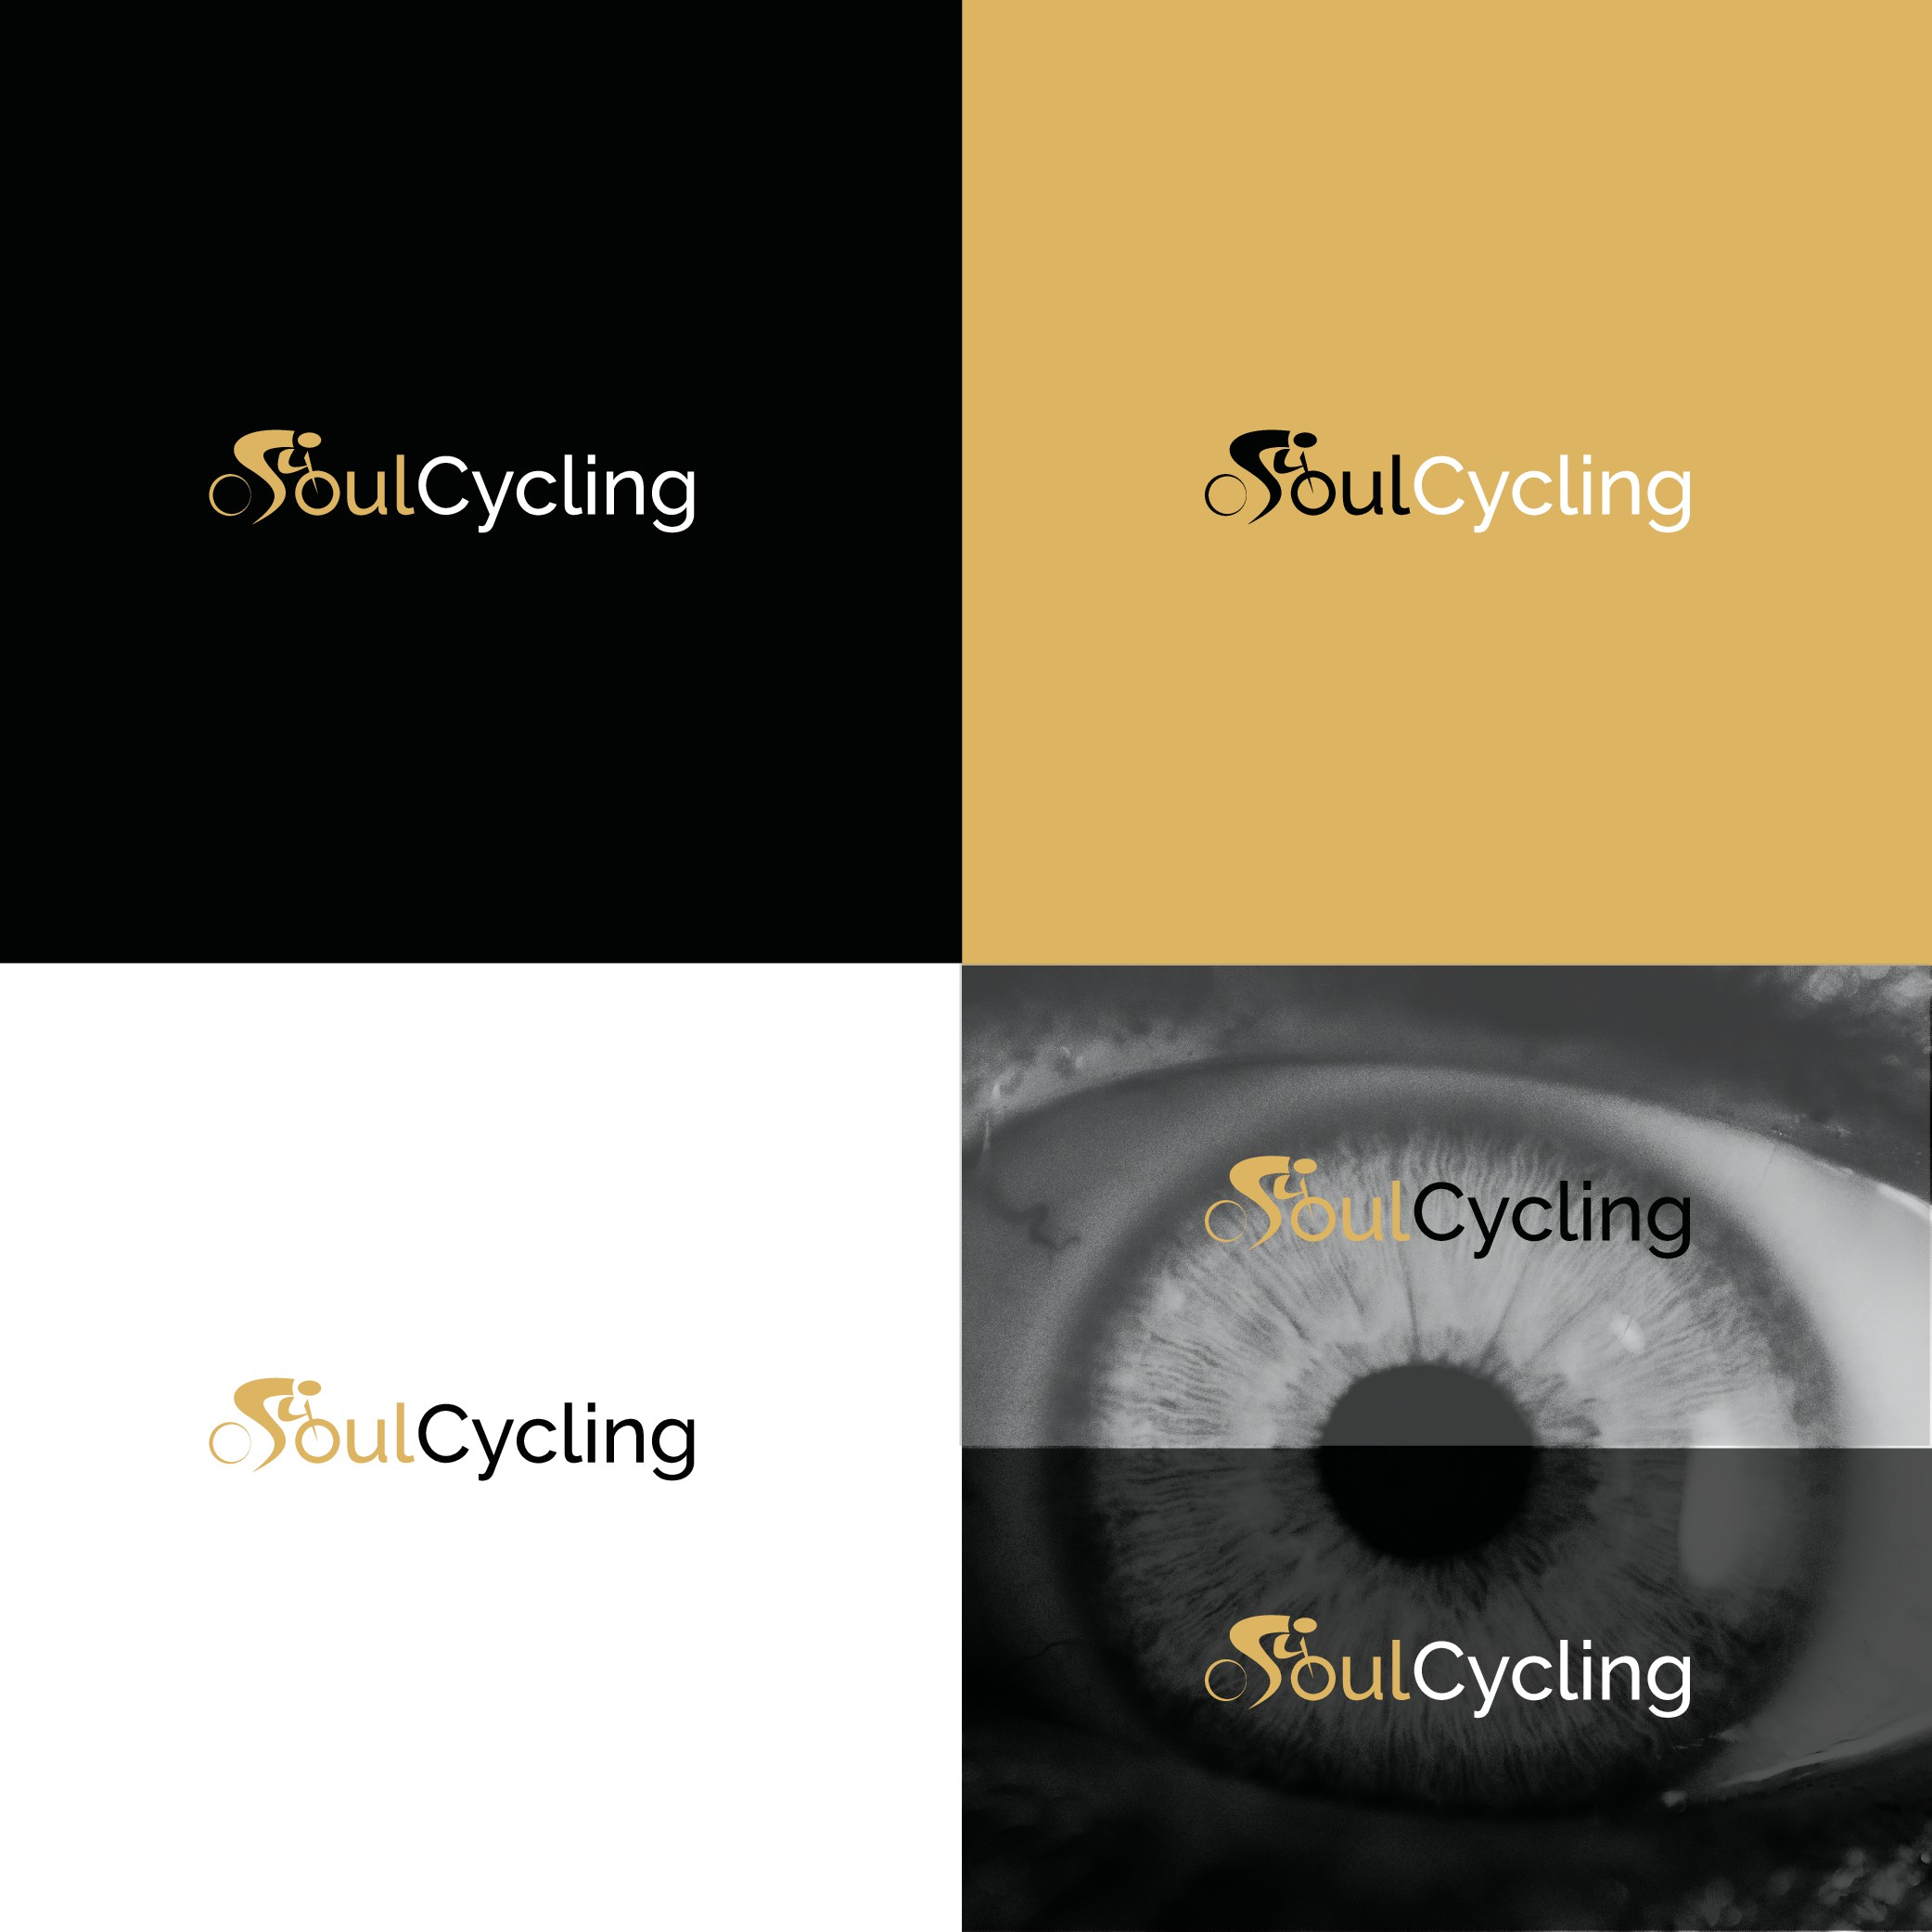 Identity needed for purpose-driven company focusing on soul searching and cycling